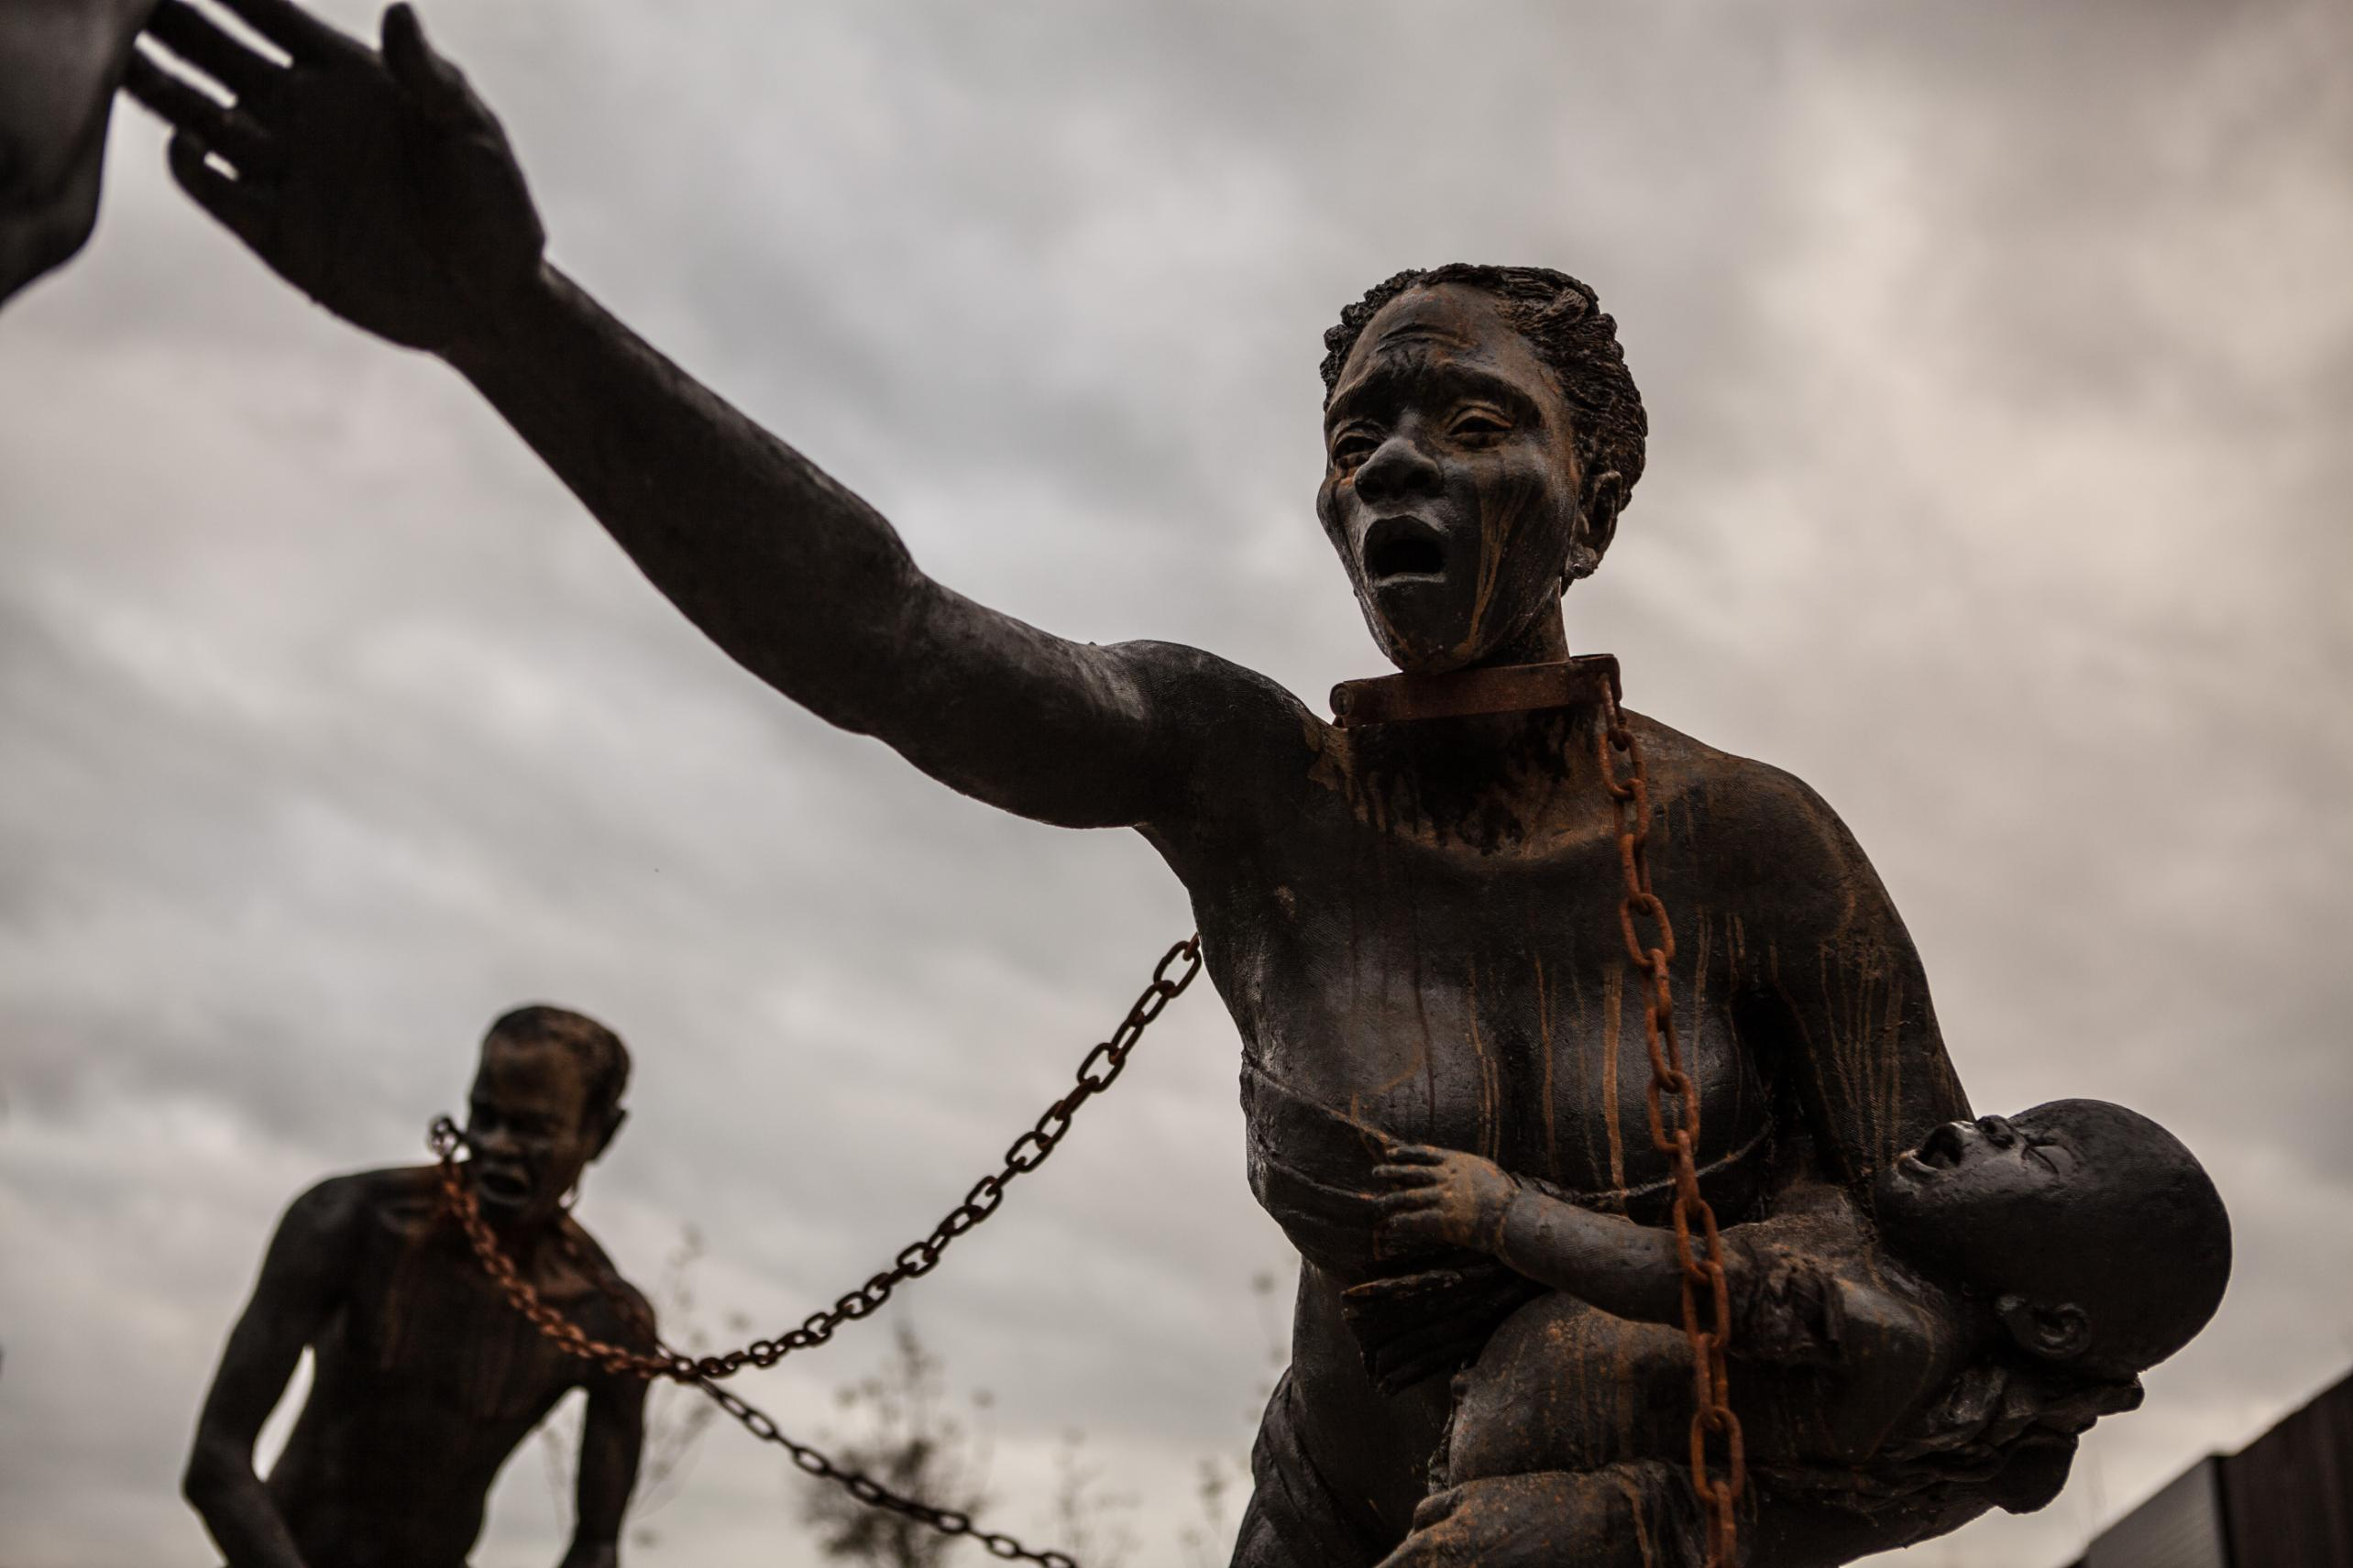 Lynching memorial in Alabama confronts a tortured past | CNN Travel